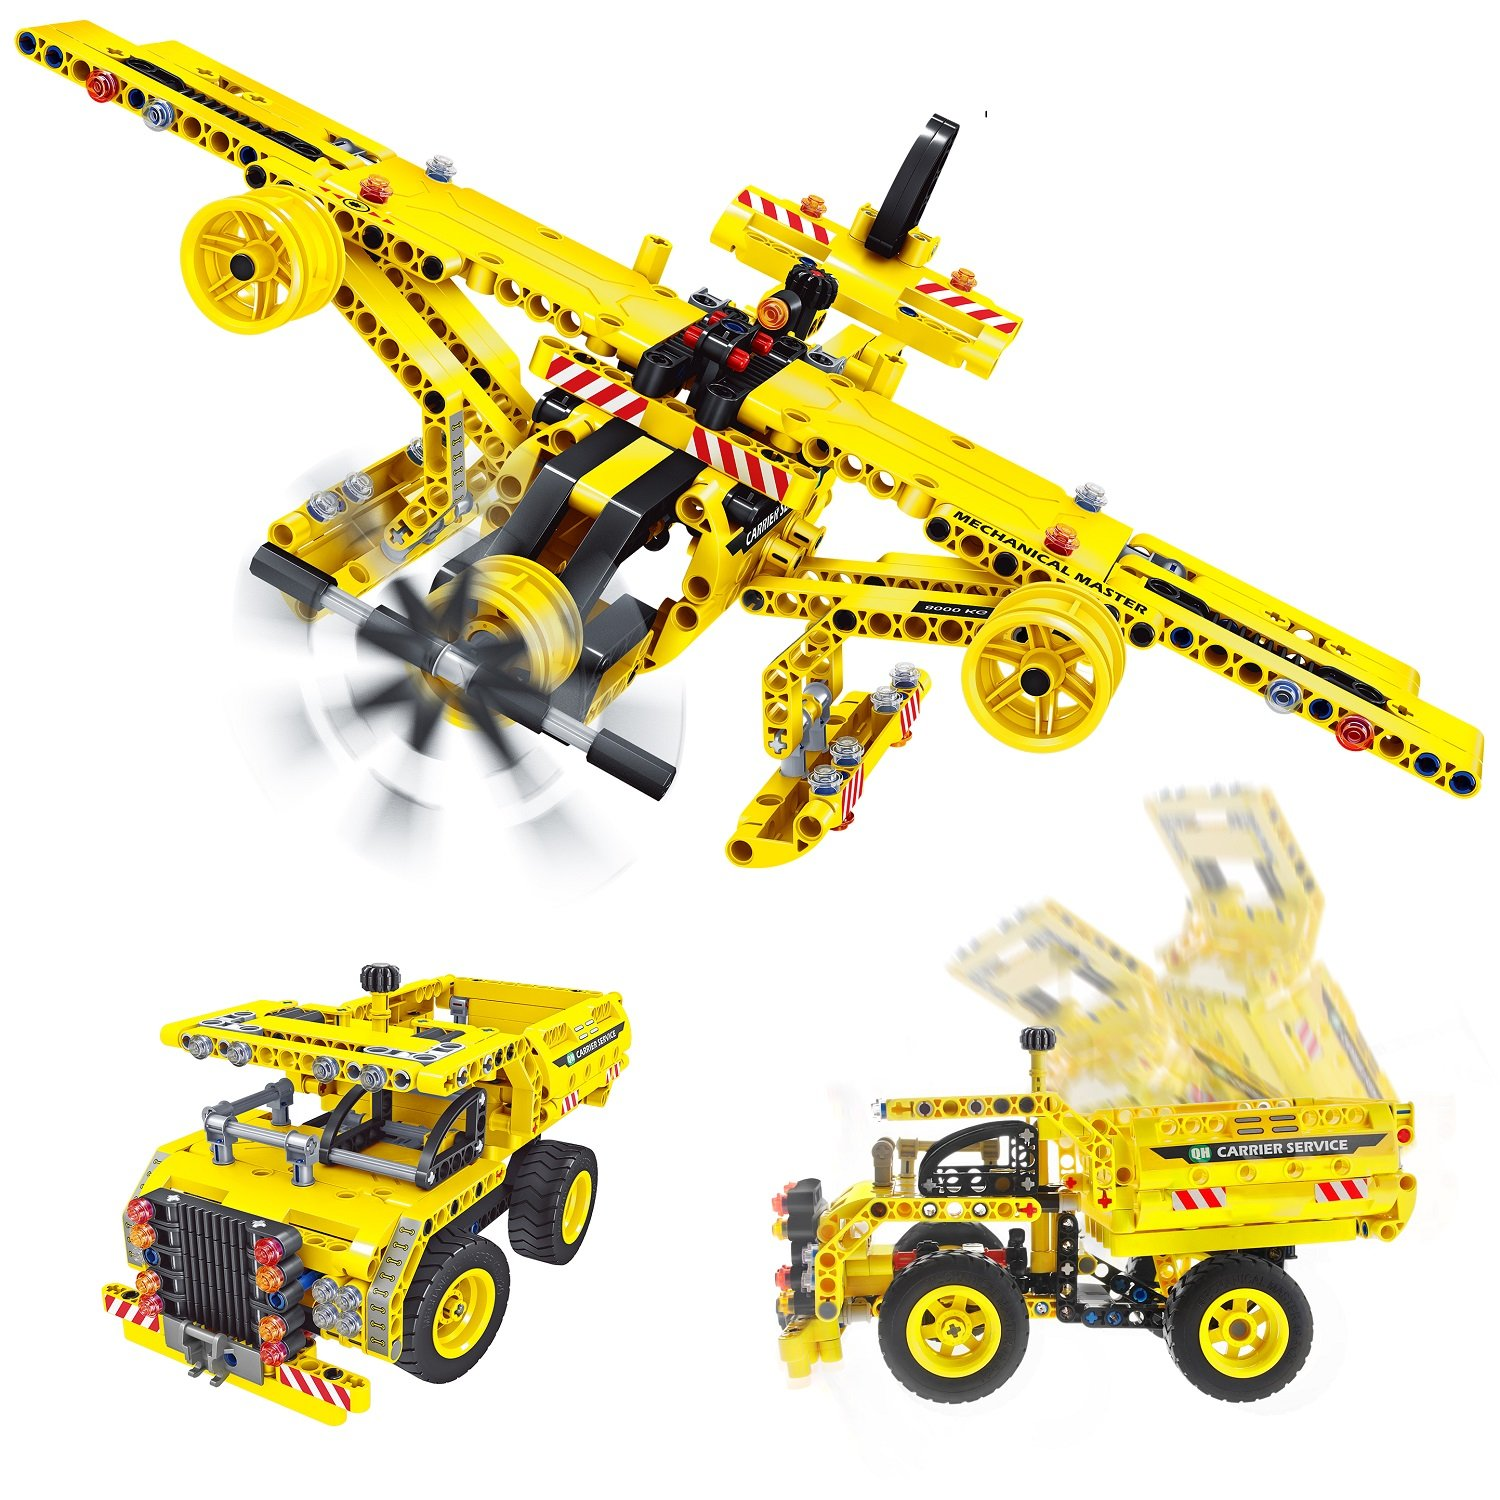 Gili Construction Engineering Building Blocks Toys for Boys Age 6